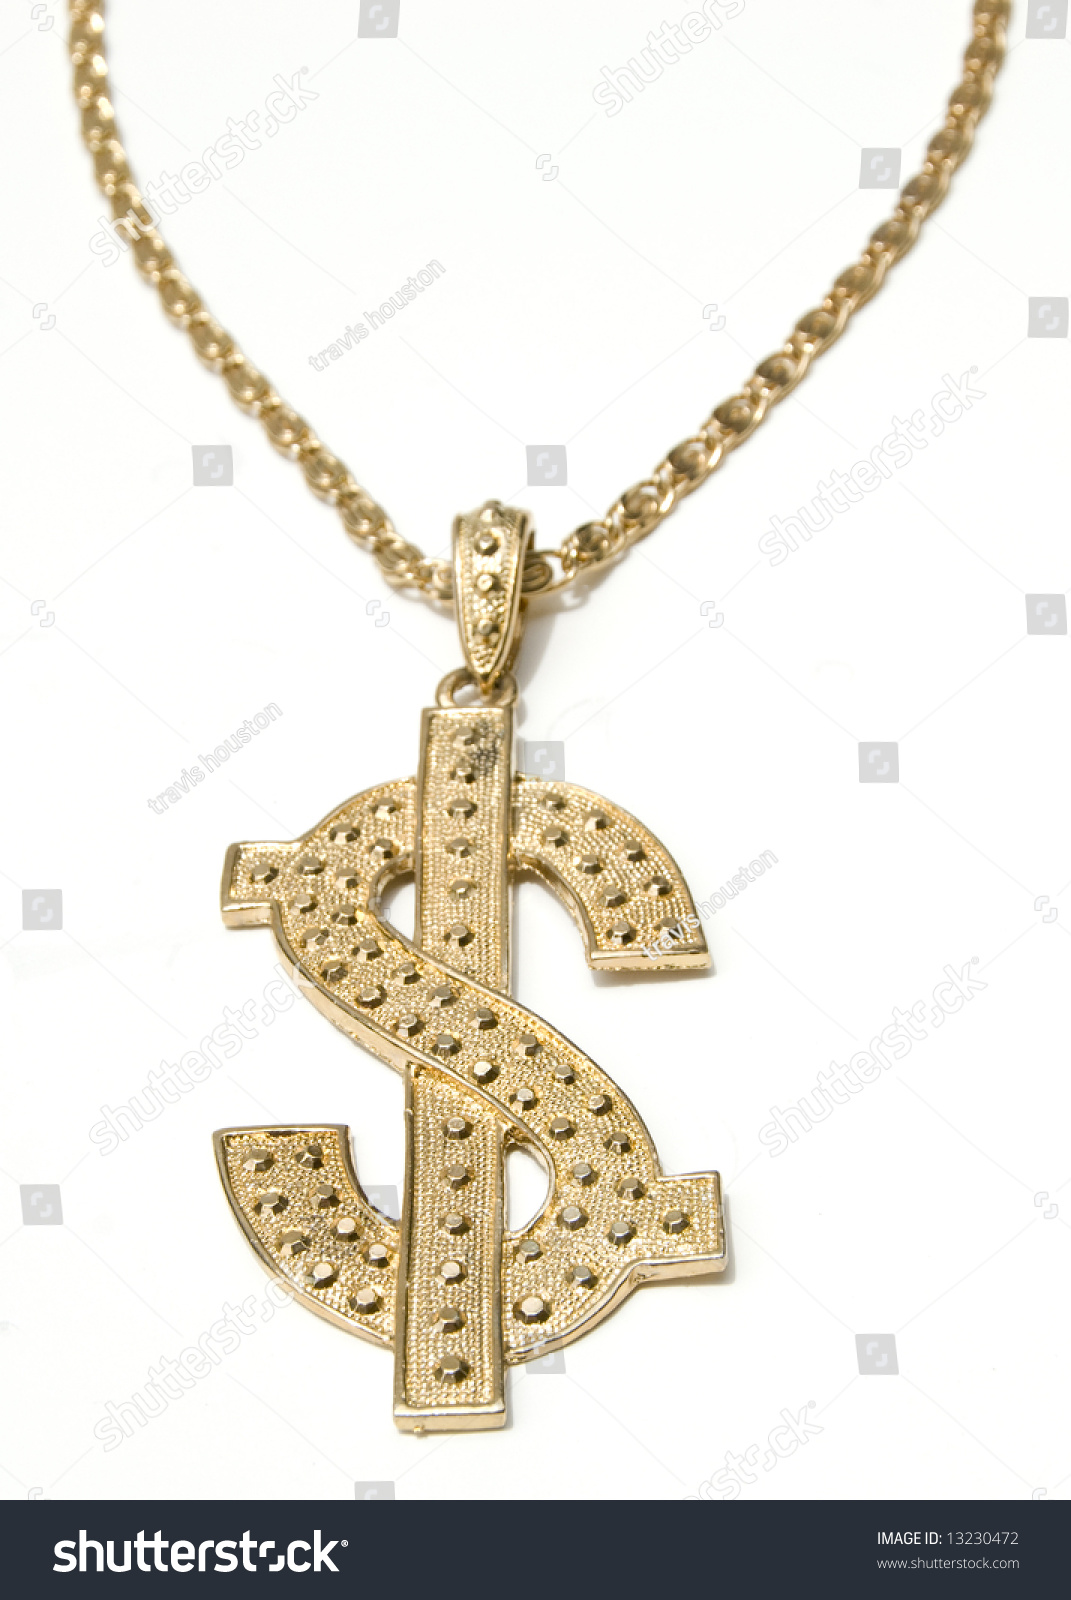 Gold dollar symbol chain necklace on stock photo 13230472 gold dollar symbol chain necklace on white background biocorpaavc